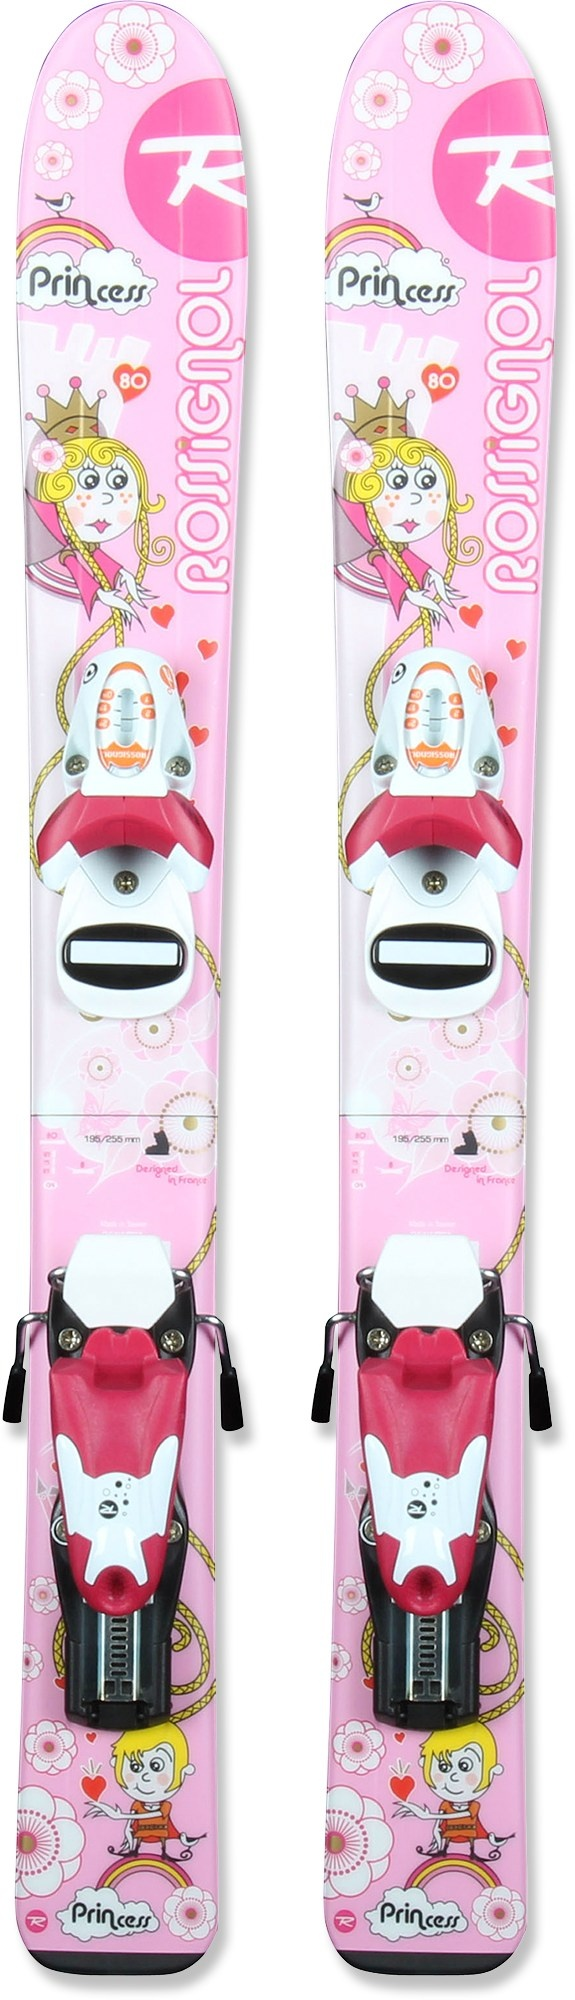 Rossignol Princess Xelium Skis with Bindings - Girls' - 2011/2012 at REI.com